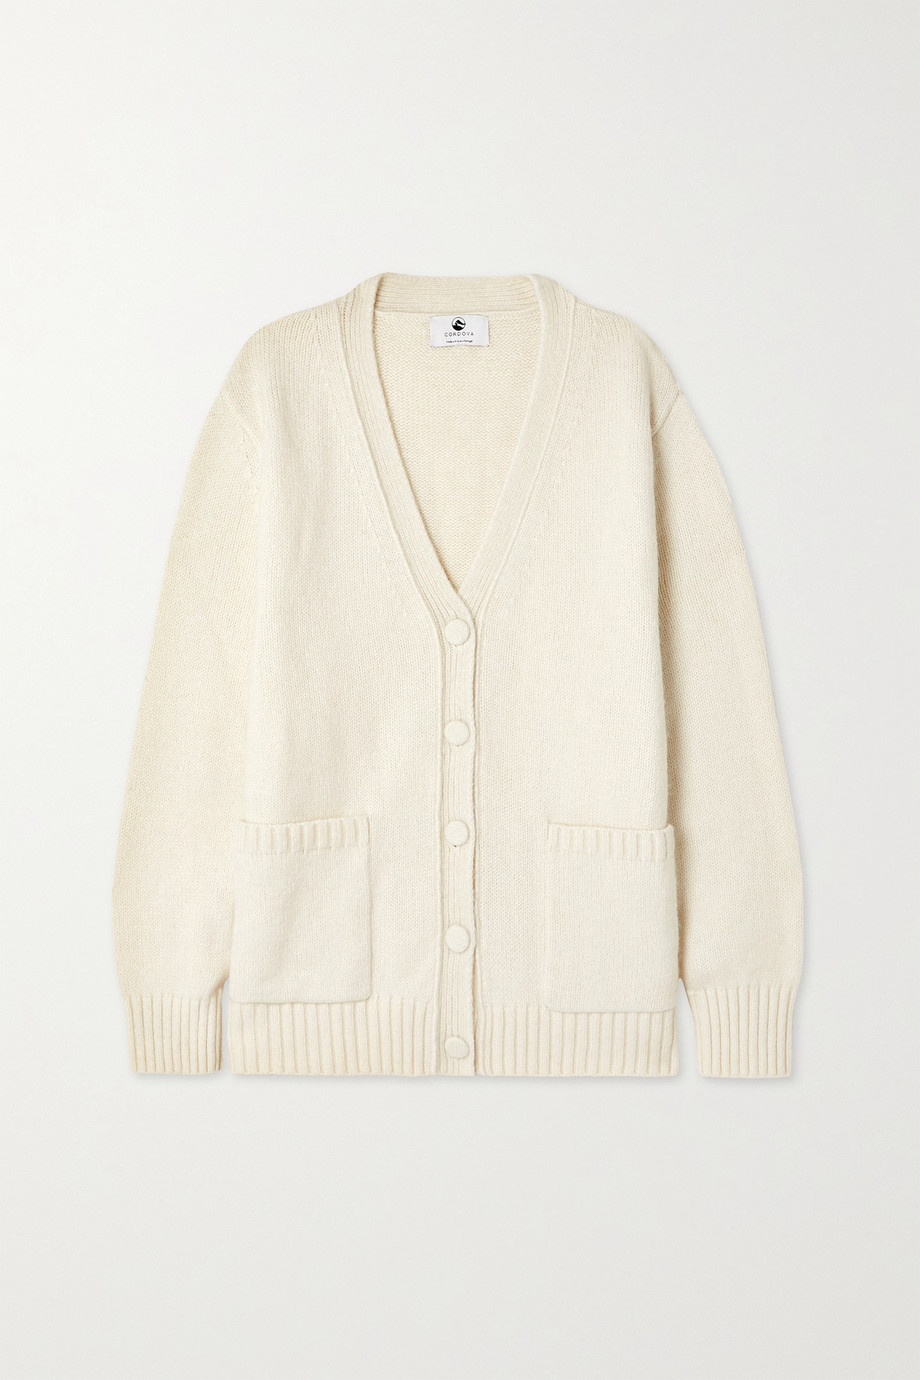 CORDOVA Oversized knitted cardigan